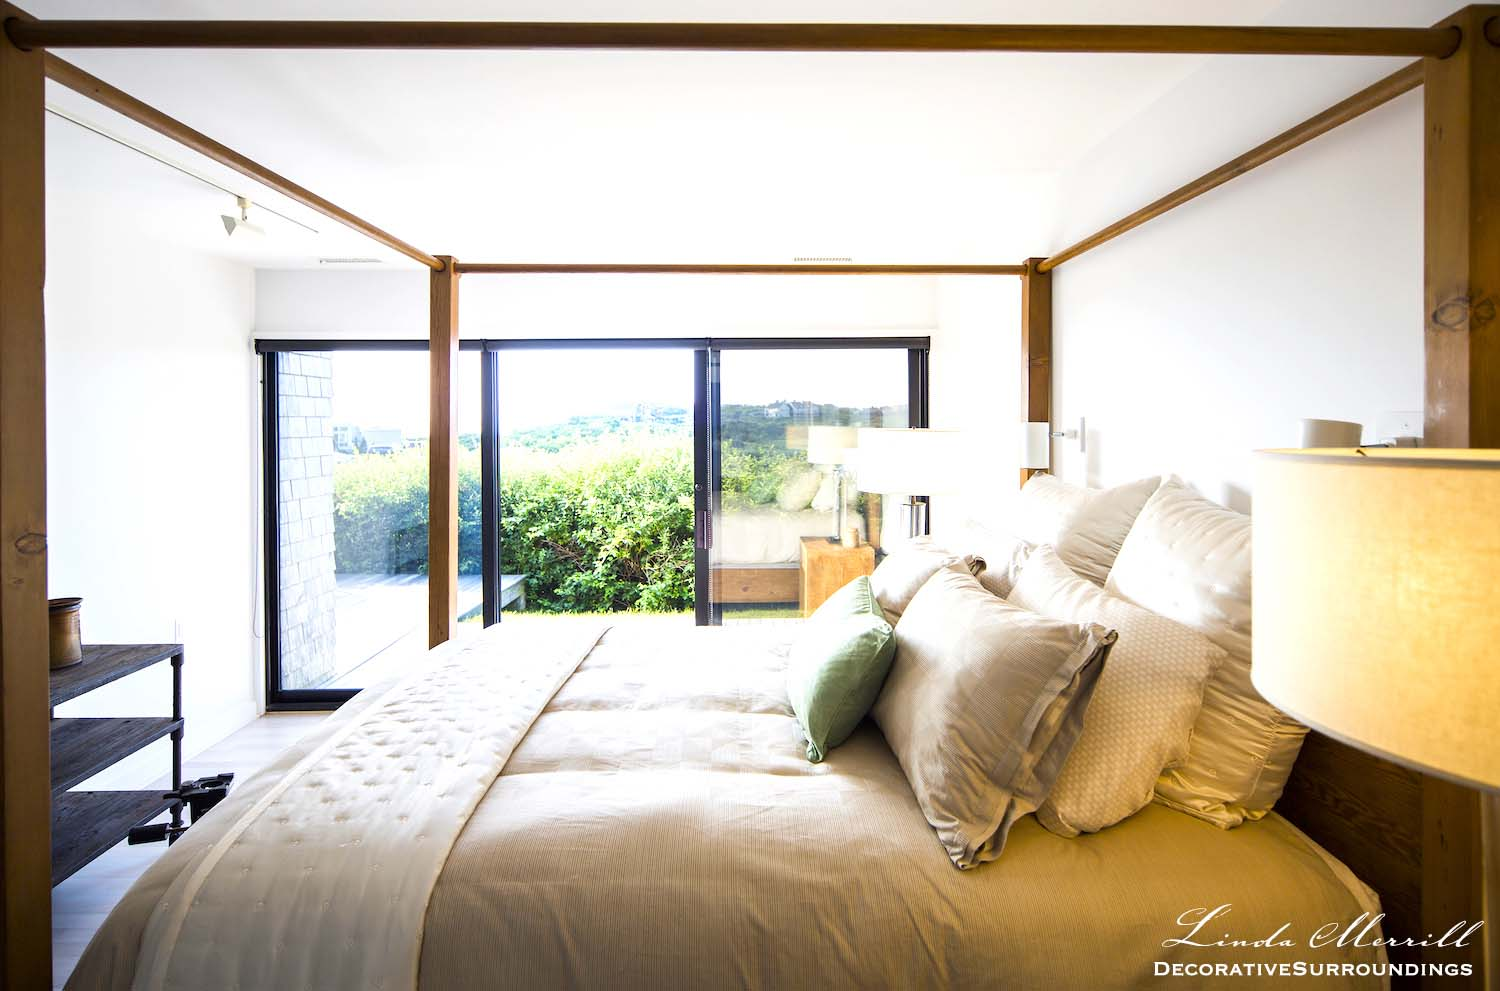 Modern beach house in Truro, MA on Cape Cod bedroom with rustic four poster bed and beige silk bedding